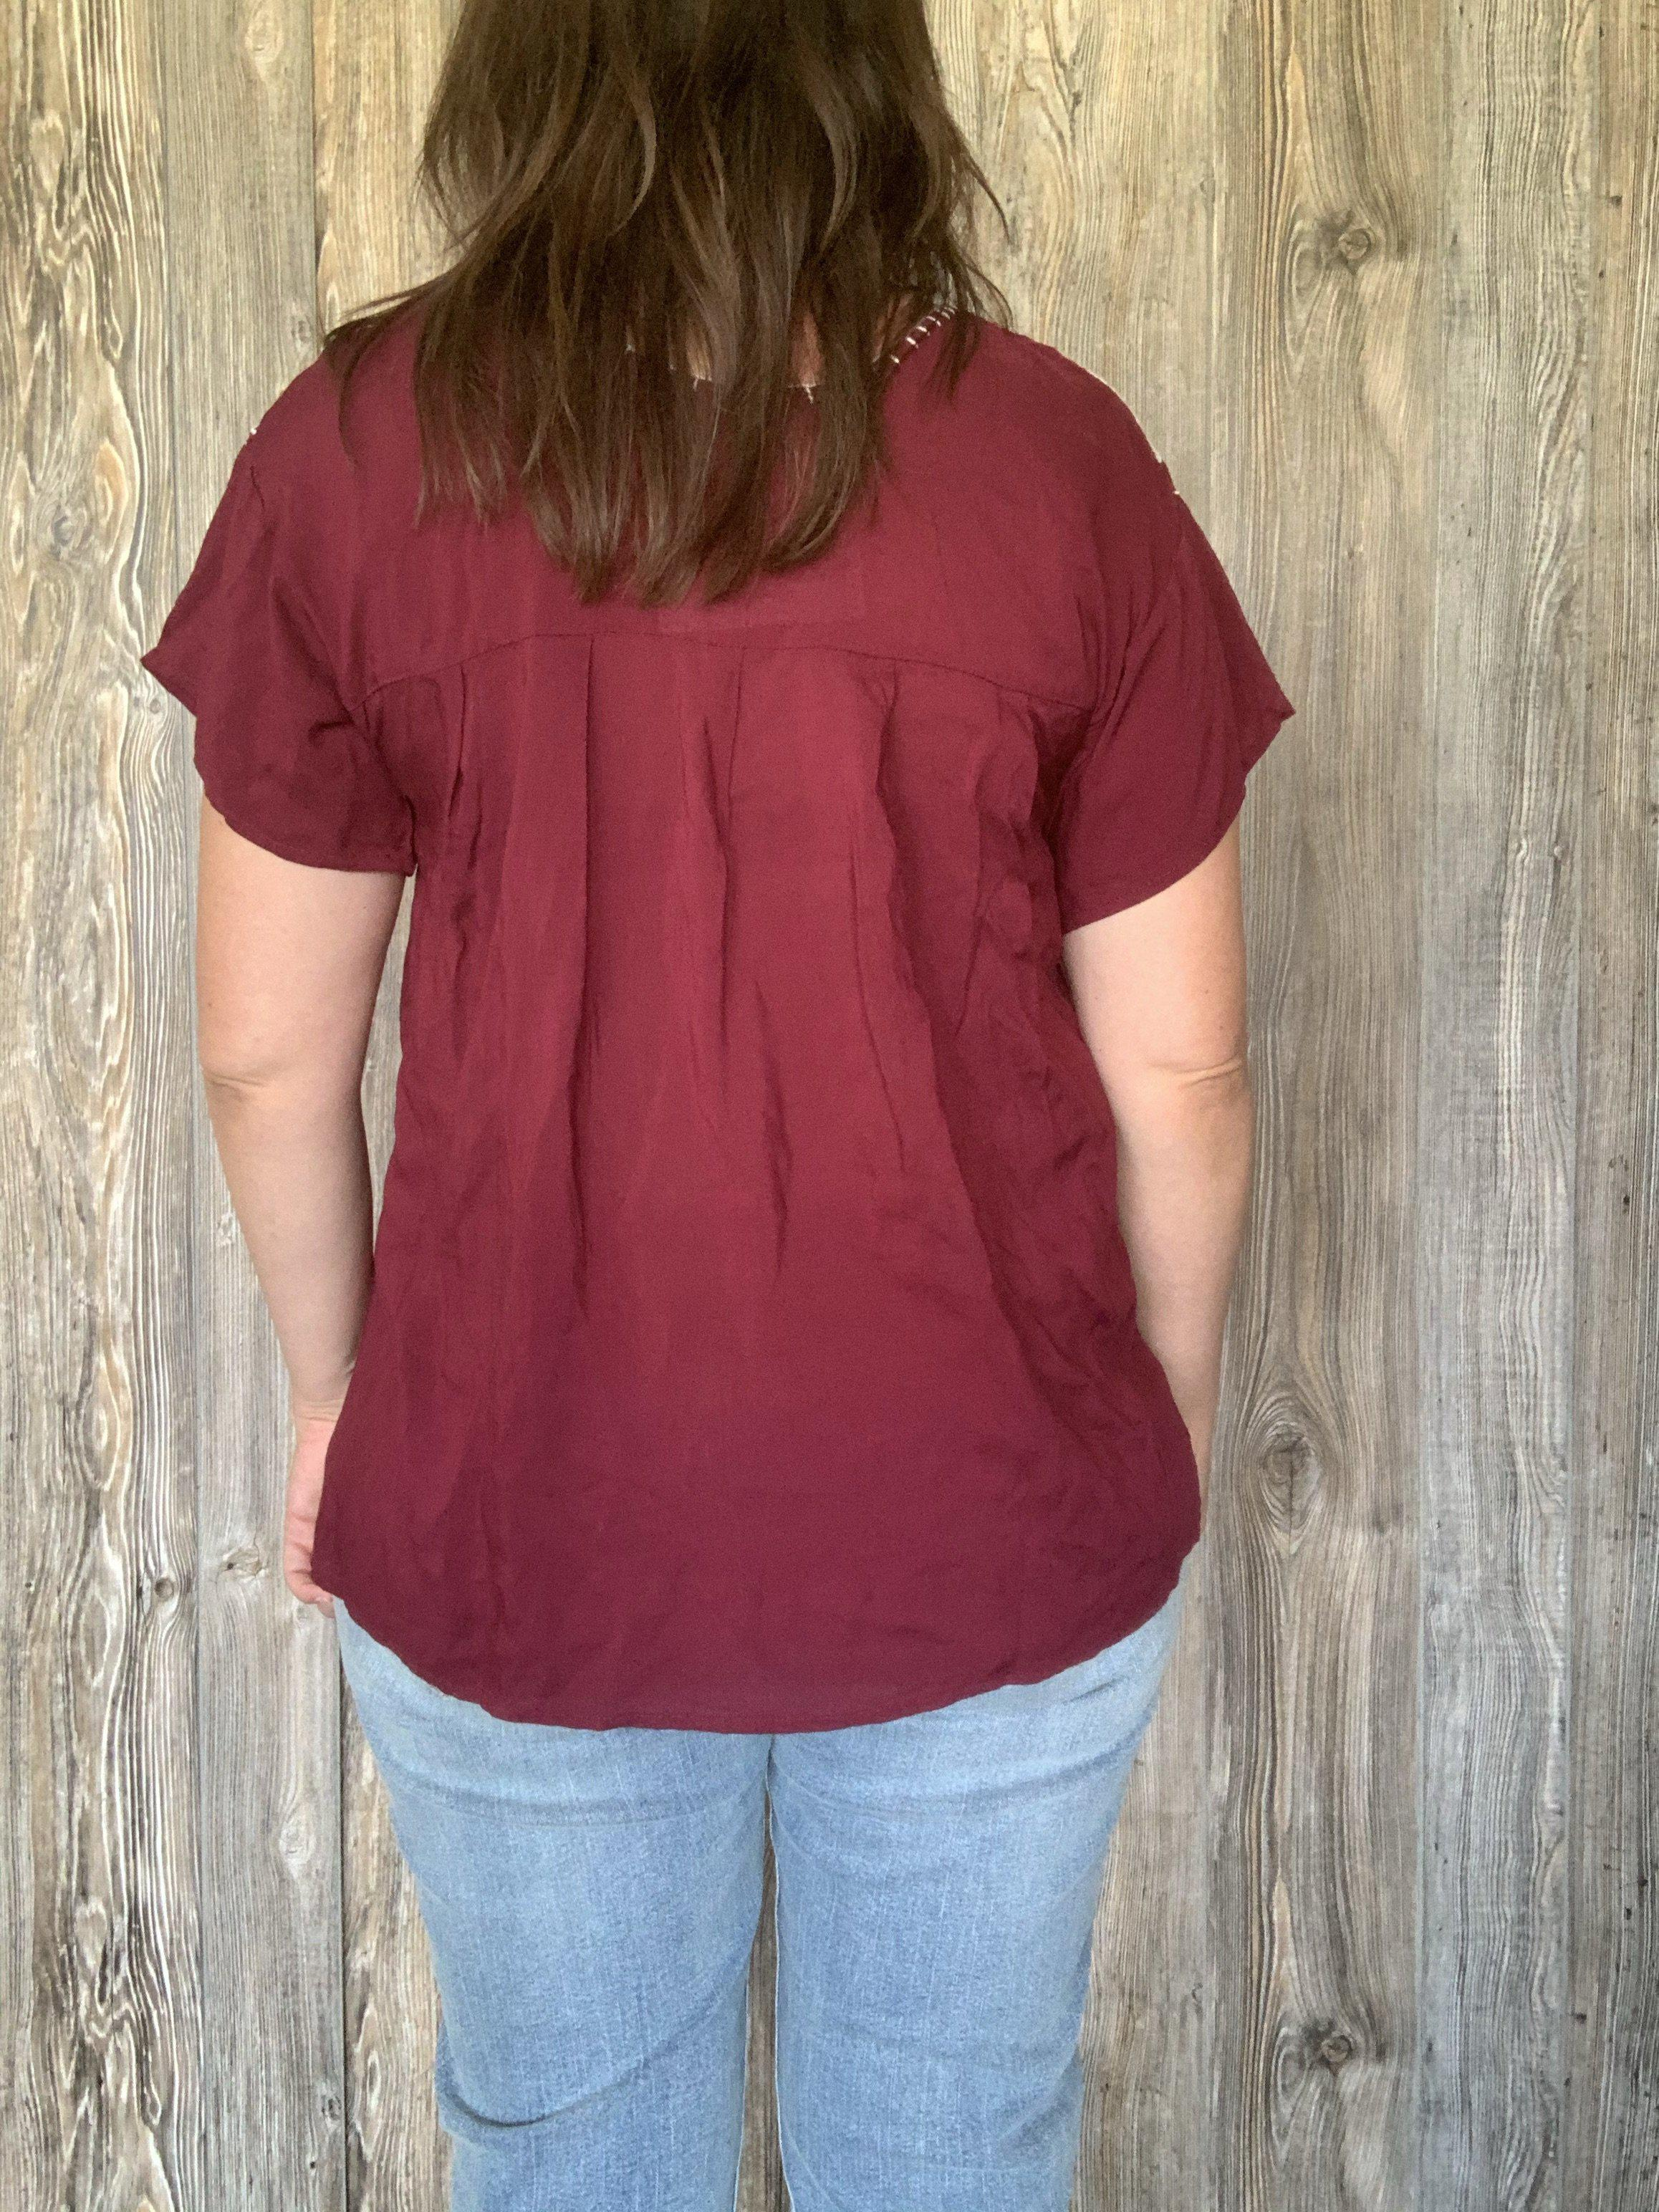 Maroon and White Short Sleeved Top